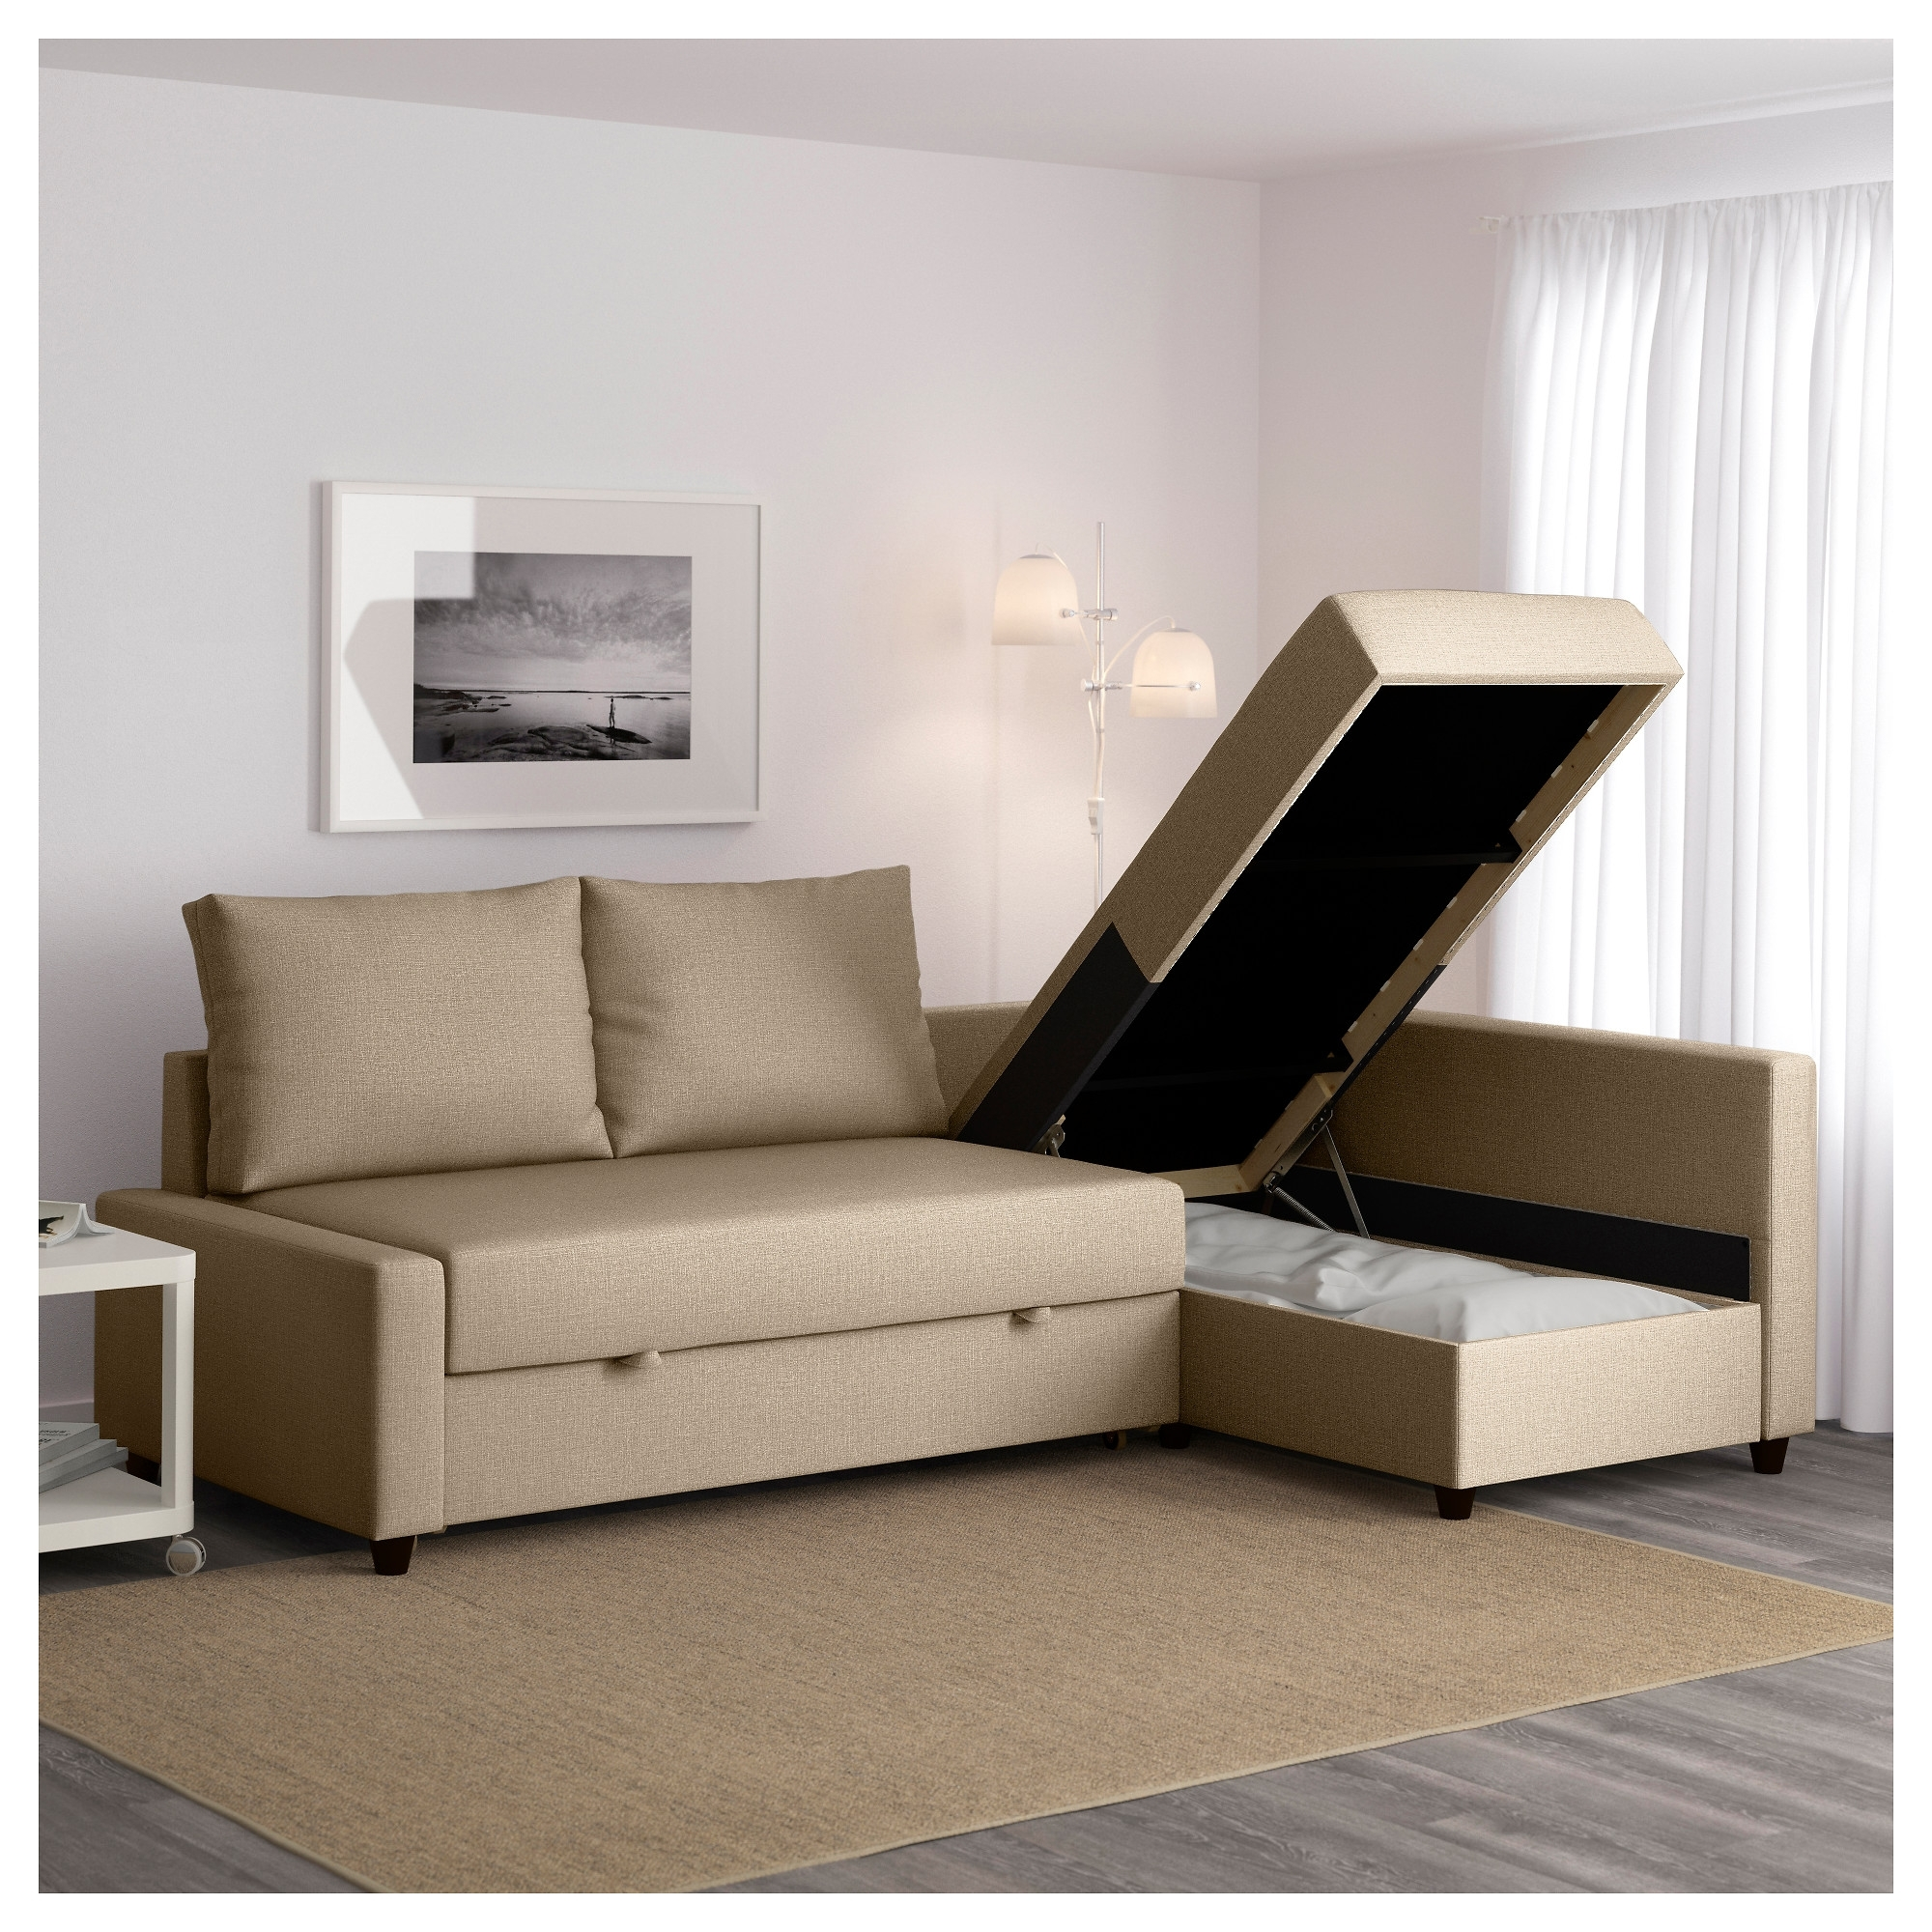 Latest Ikea Sofa Beds With Chaise Pertaining To Friheten Corner Sofa Bed With Storage Skiftebo Beige – Ikea (View 9 of 15)